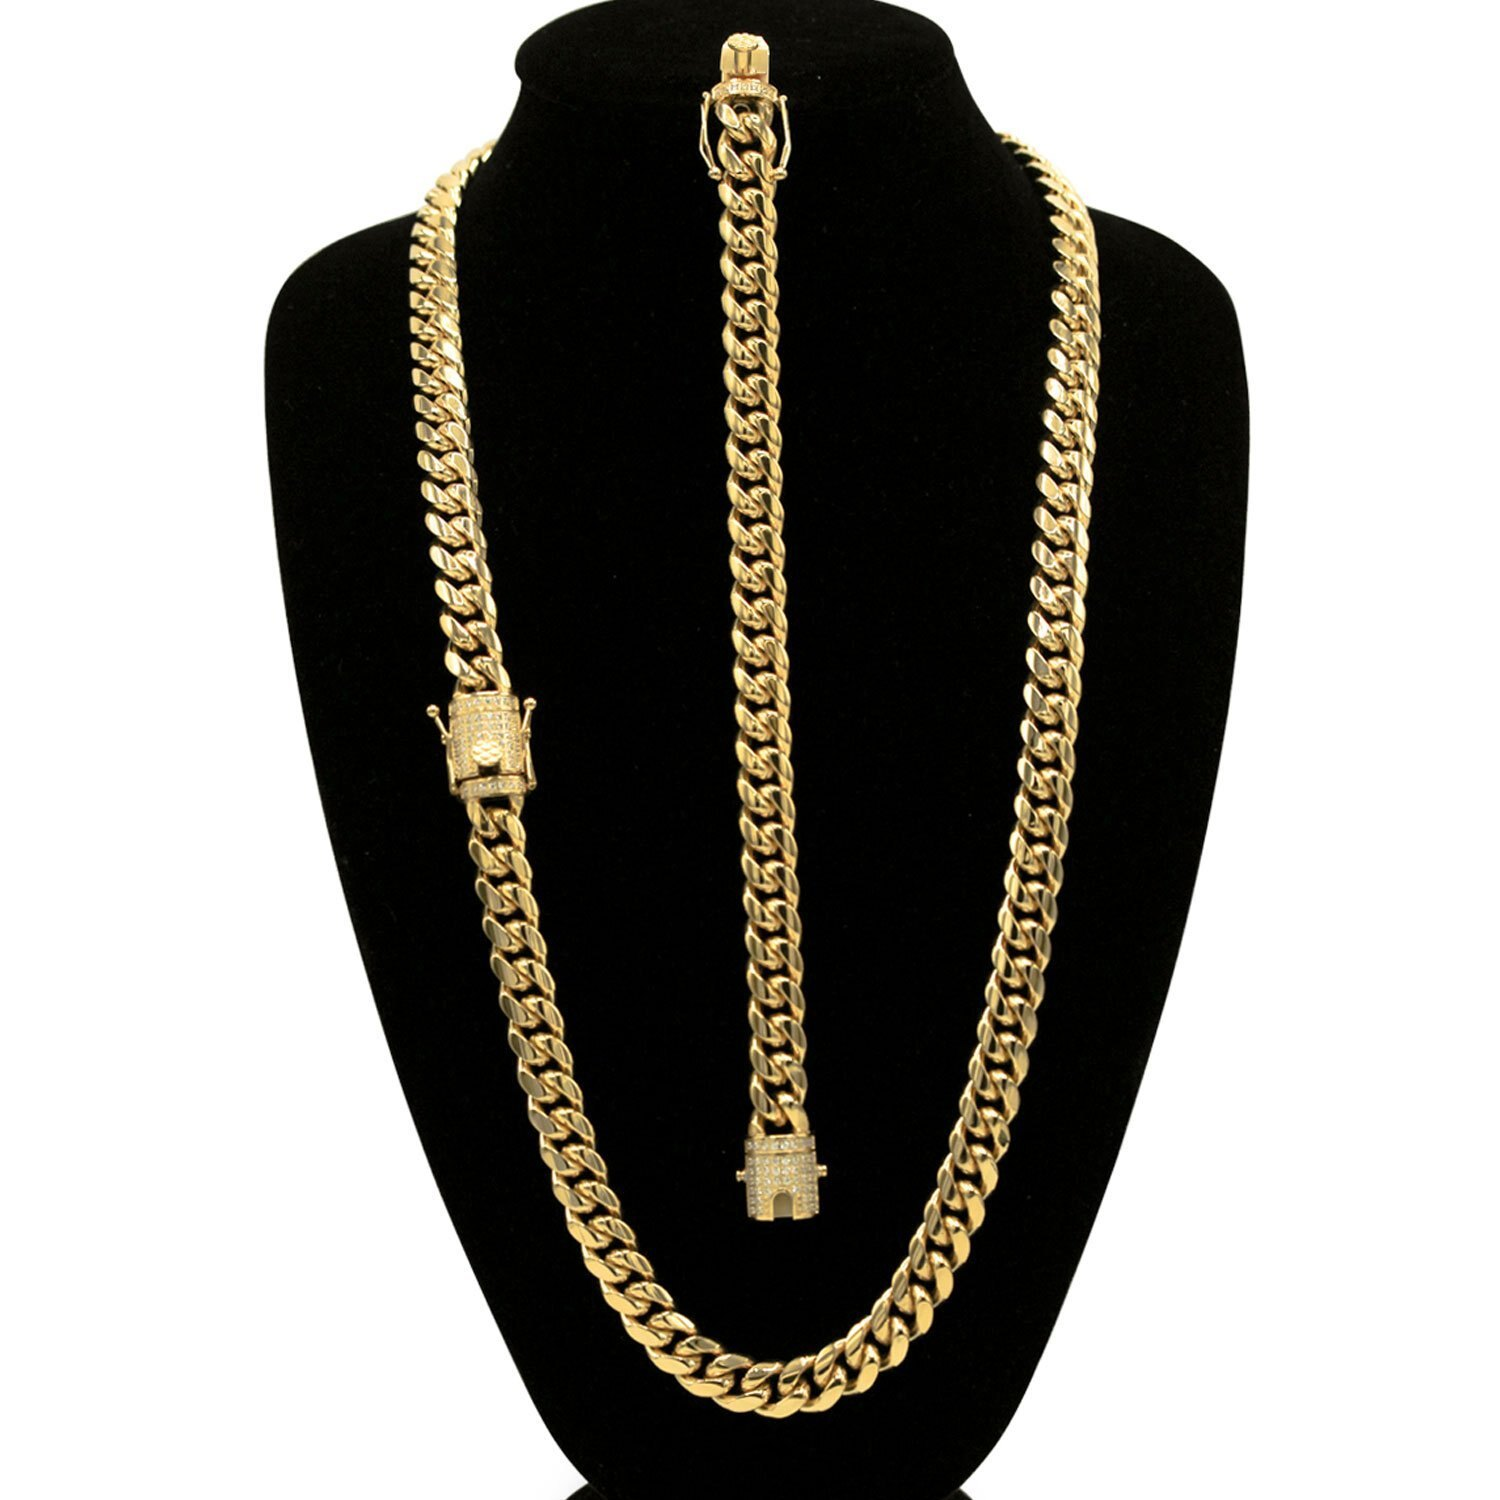 668d557e5a5acc Cuban Link Necklace Bracelet Set Gold Plated Cubic Zirconia Box Clasp Miami Cuban  Chain Stainless Steel